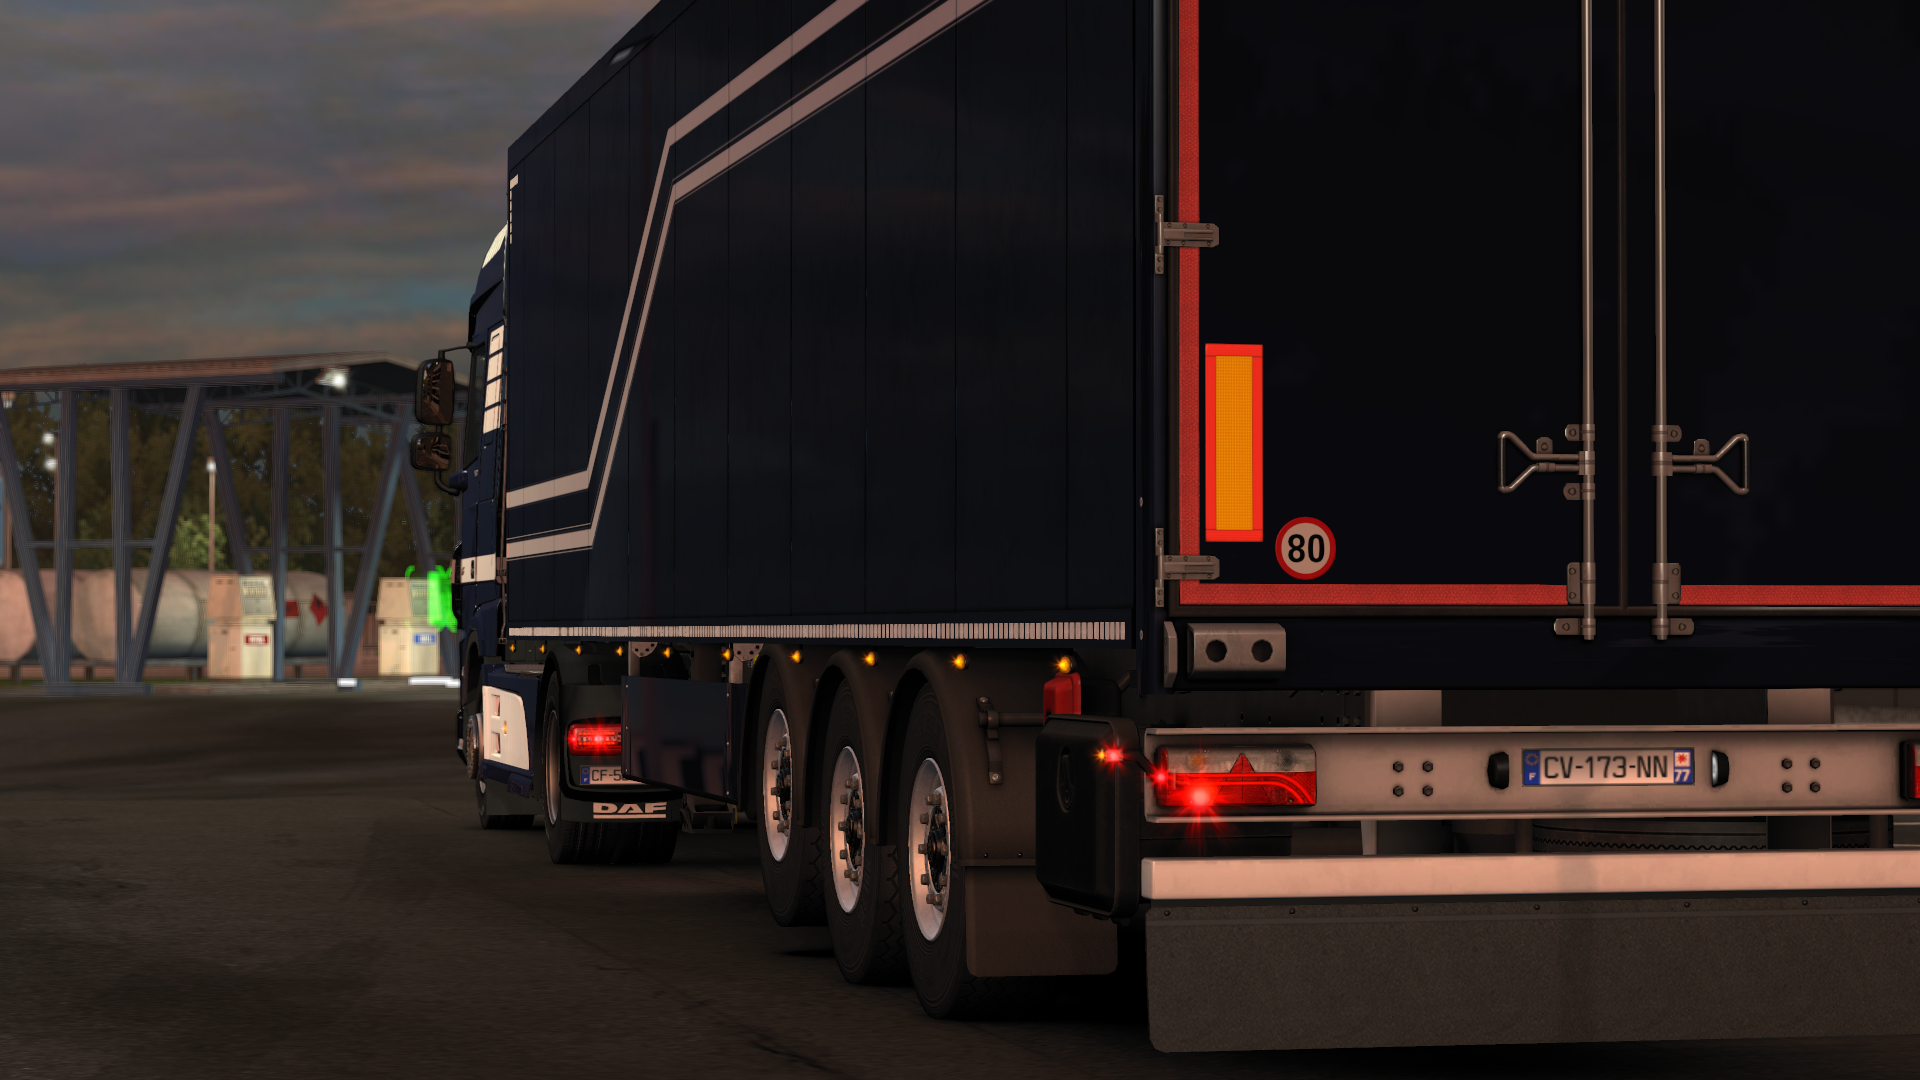 ets2_20180812_003621_00.png